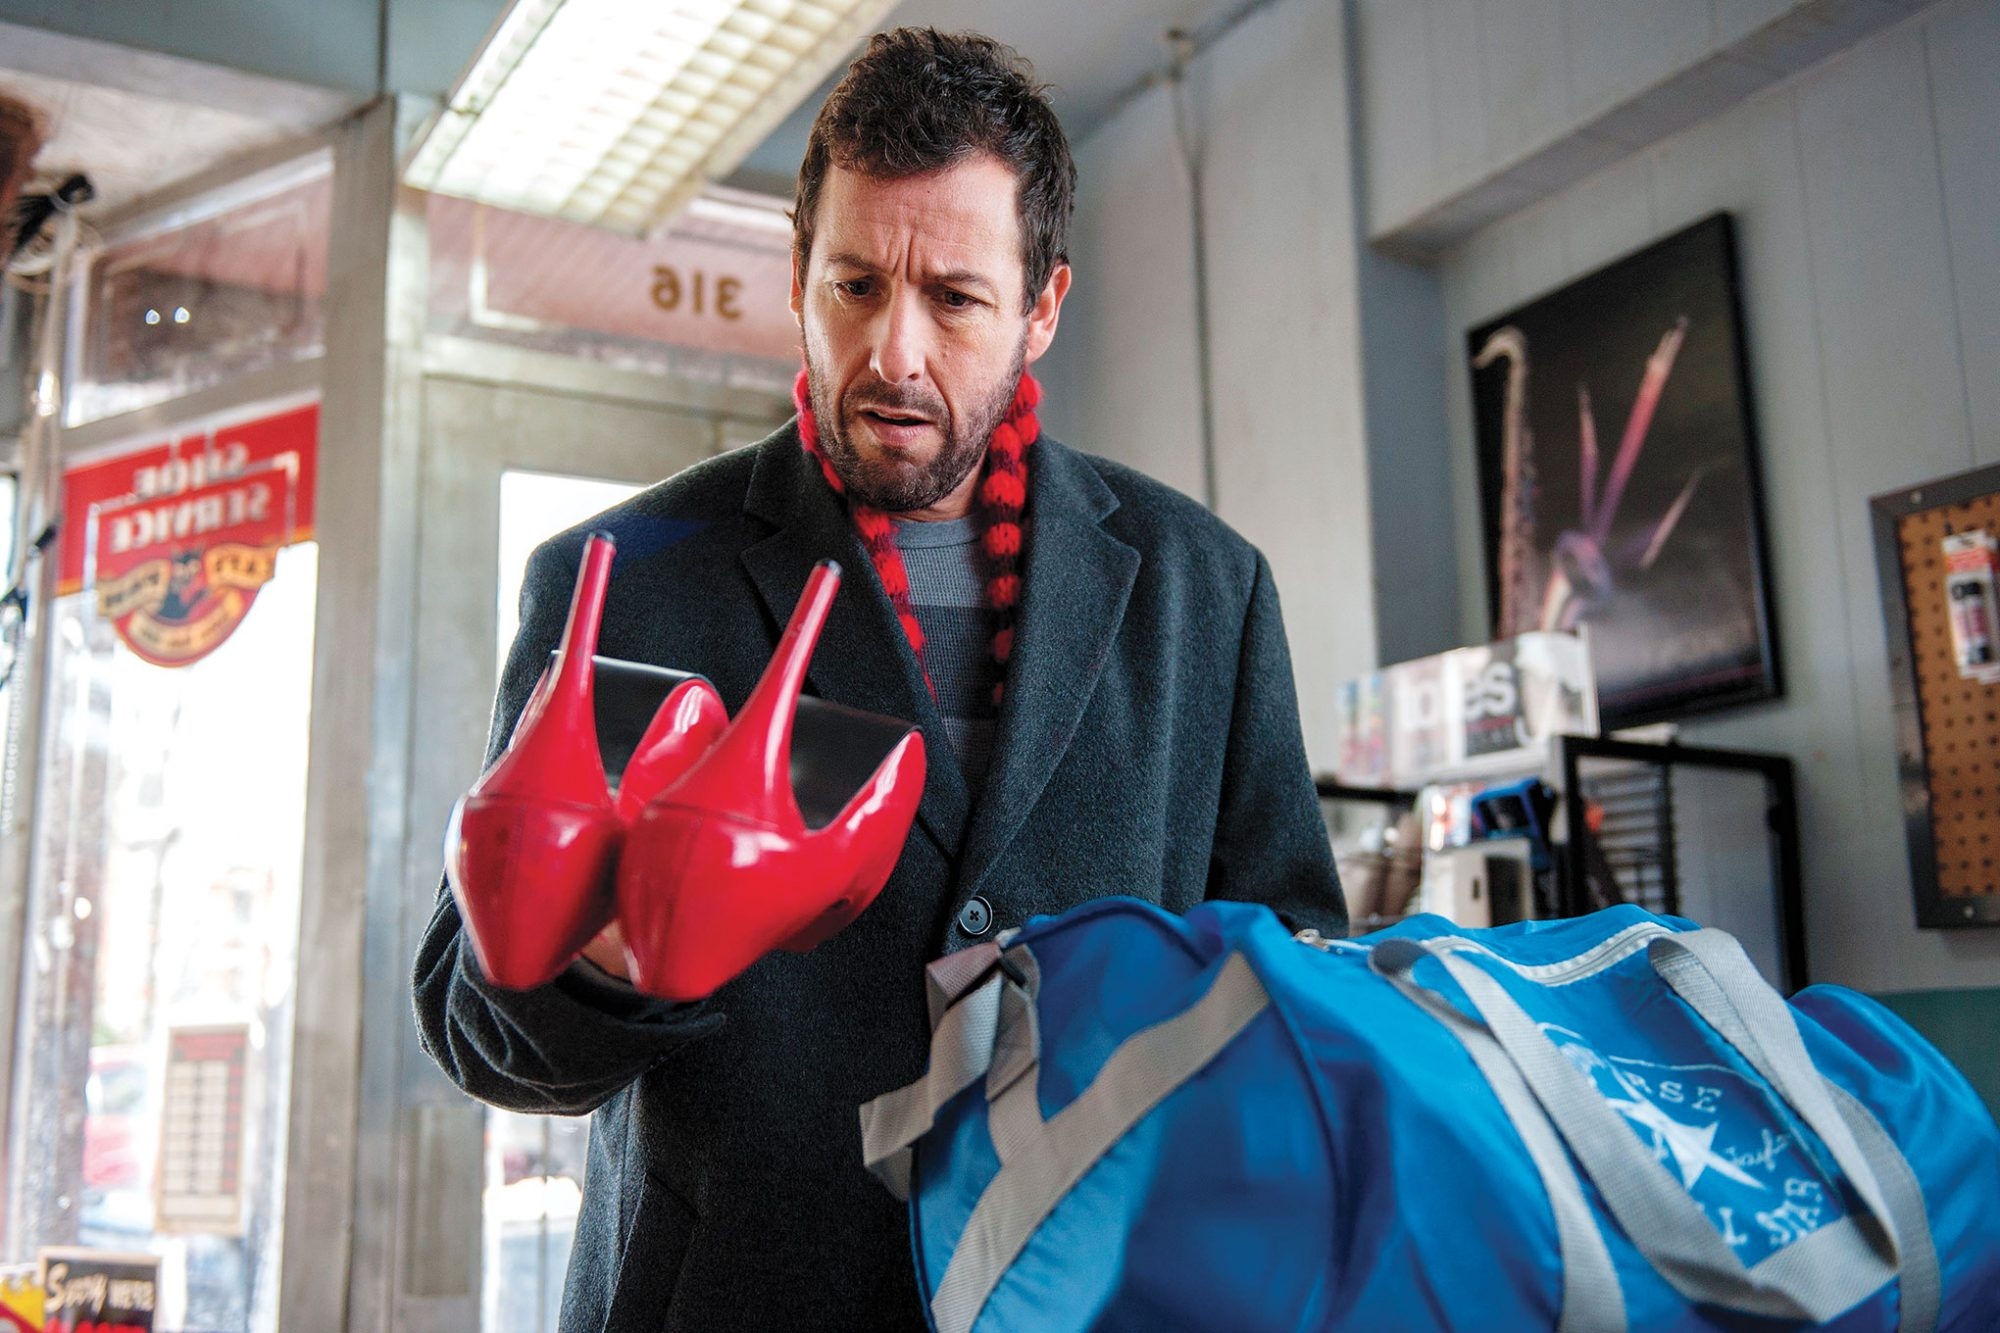 Adam Sandler in The Cobbler